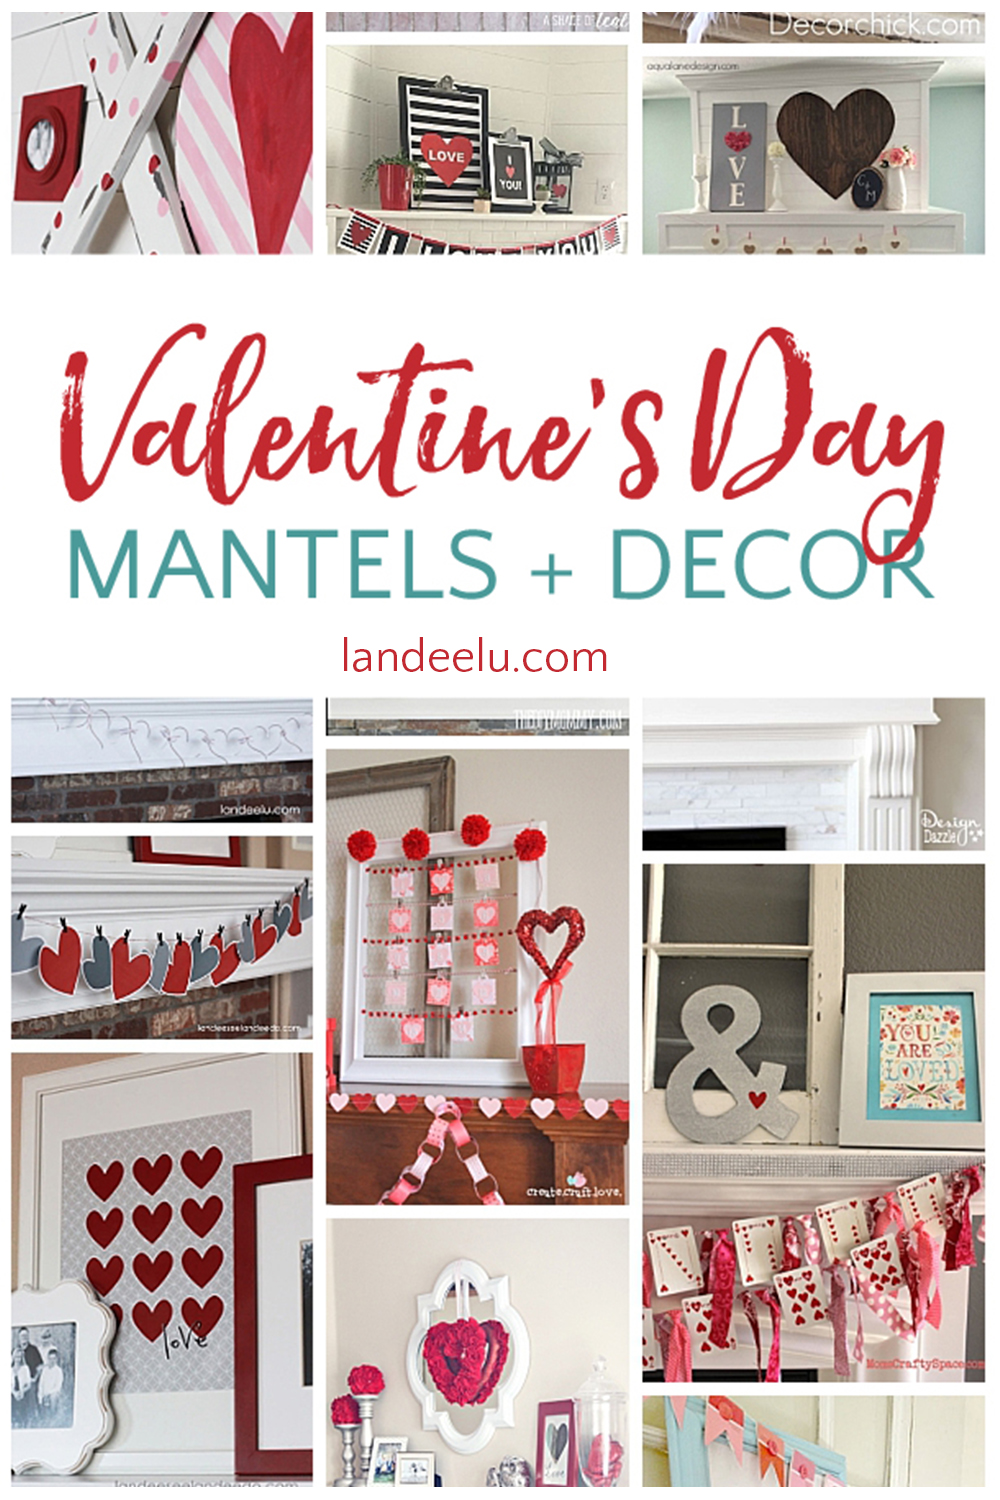 Valentine's Day Decor... put some love up on those mantels! Such cute ideas! #valentinesday #valentinesdaymantel #valentinesdaydecor #hearts